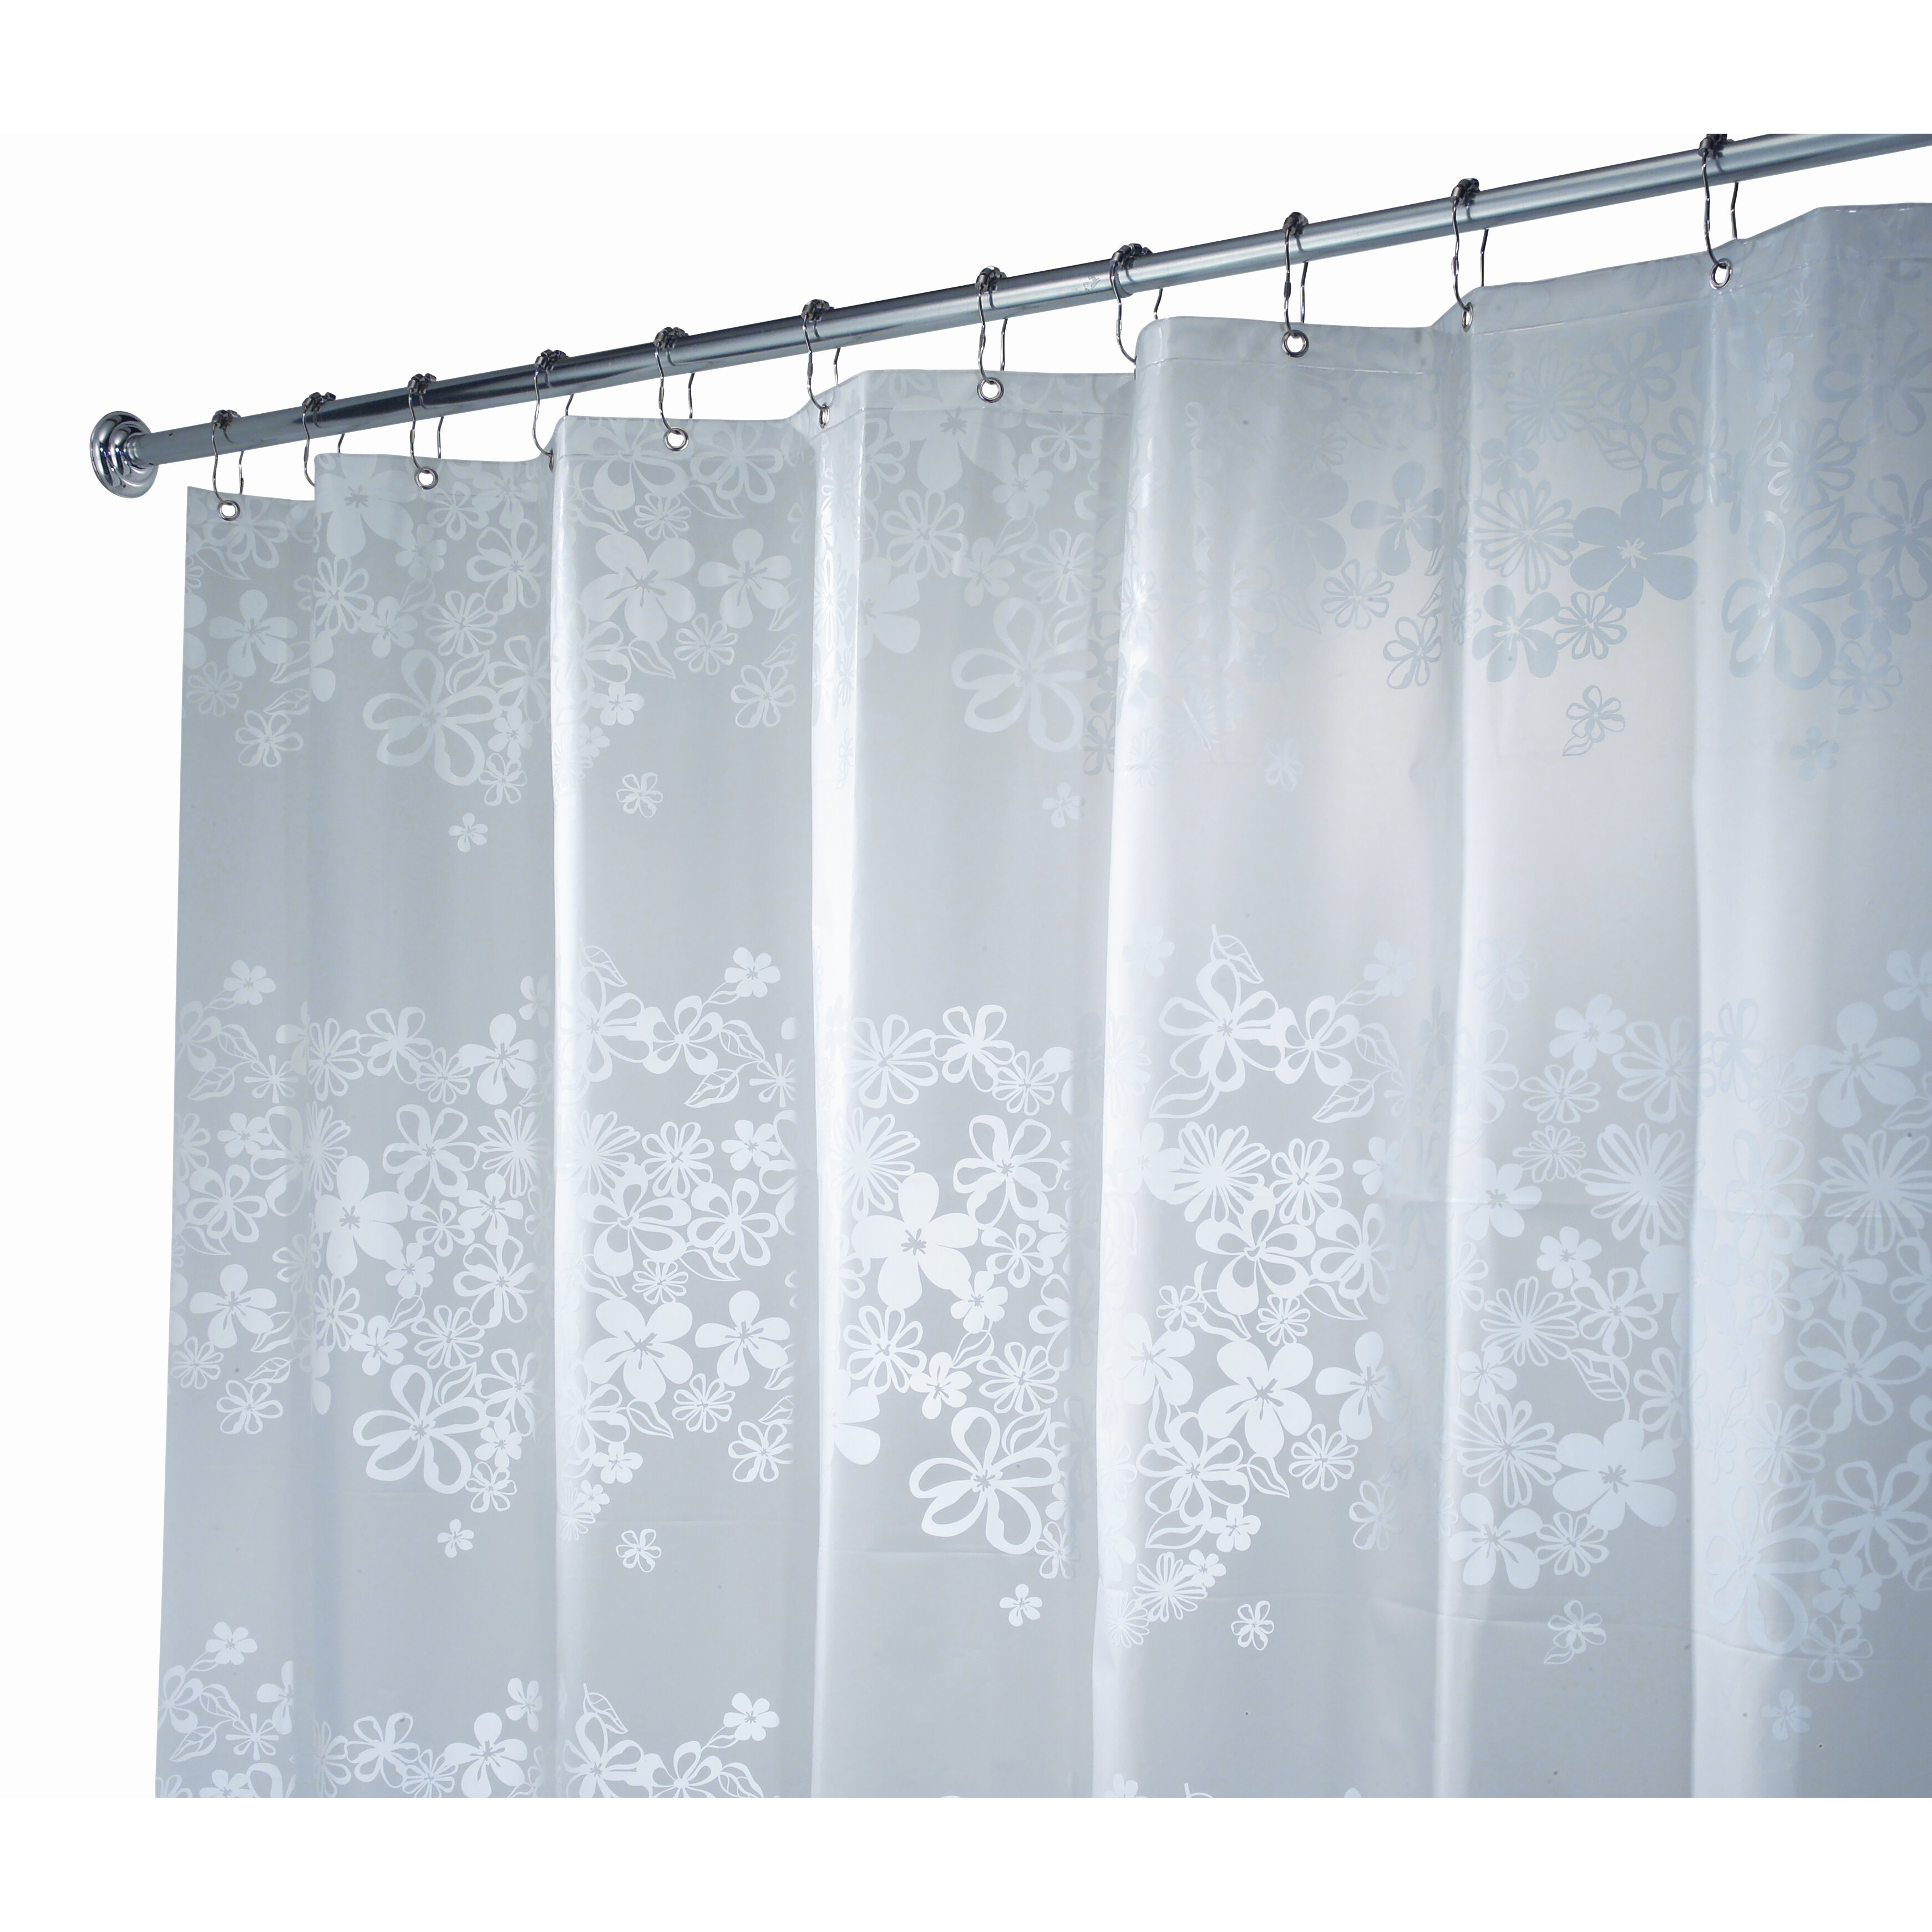 Interdesign eva vinyl shower curtain reviews wayfair for Shower curtain savers